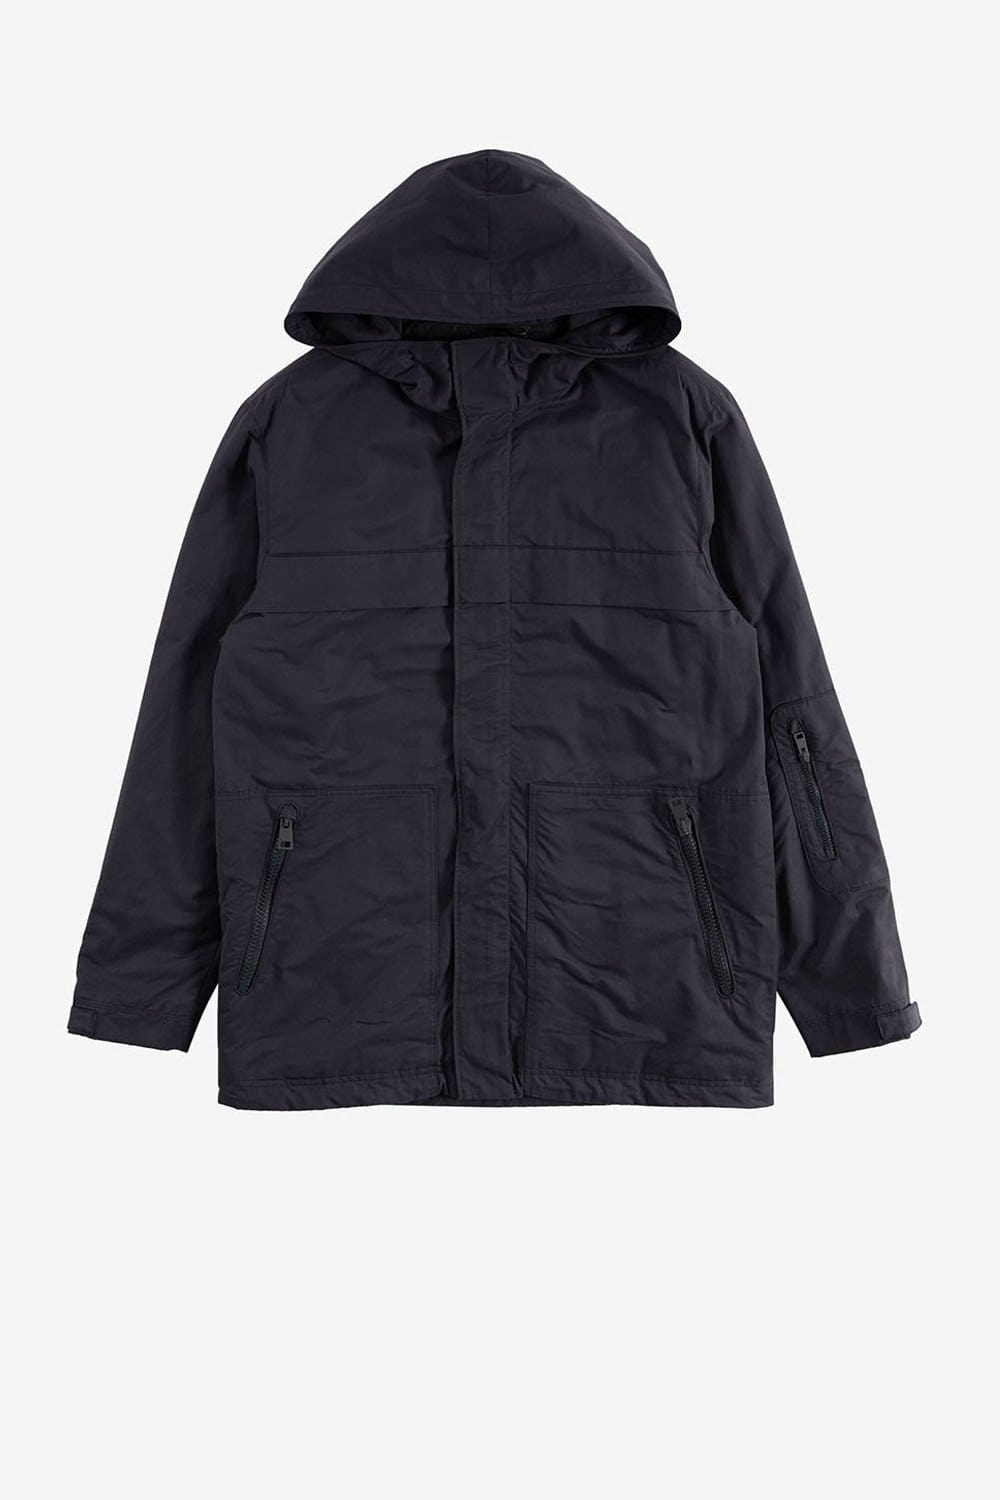 A.P.C. Apparel M Trench Coat